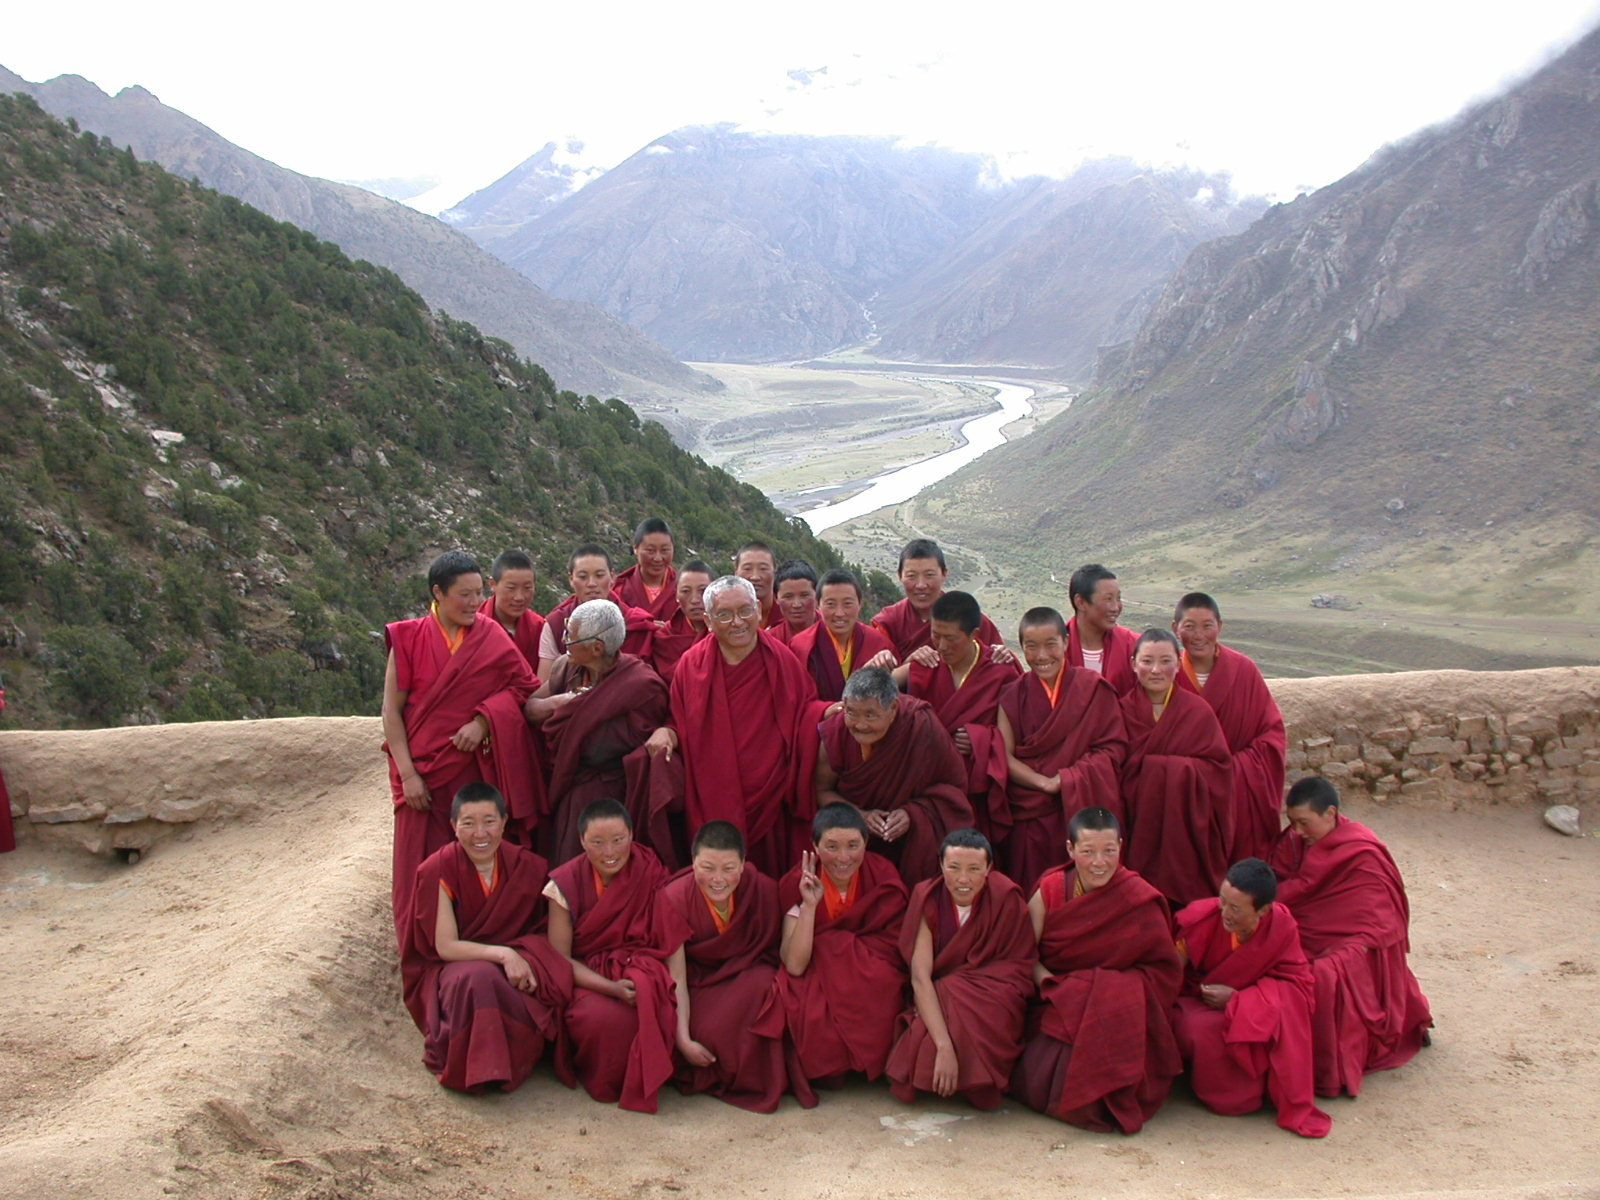 Lama Zopa Rinpoche with nuns from a nunnery he supports